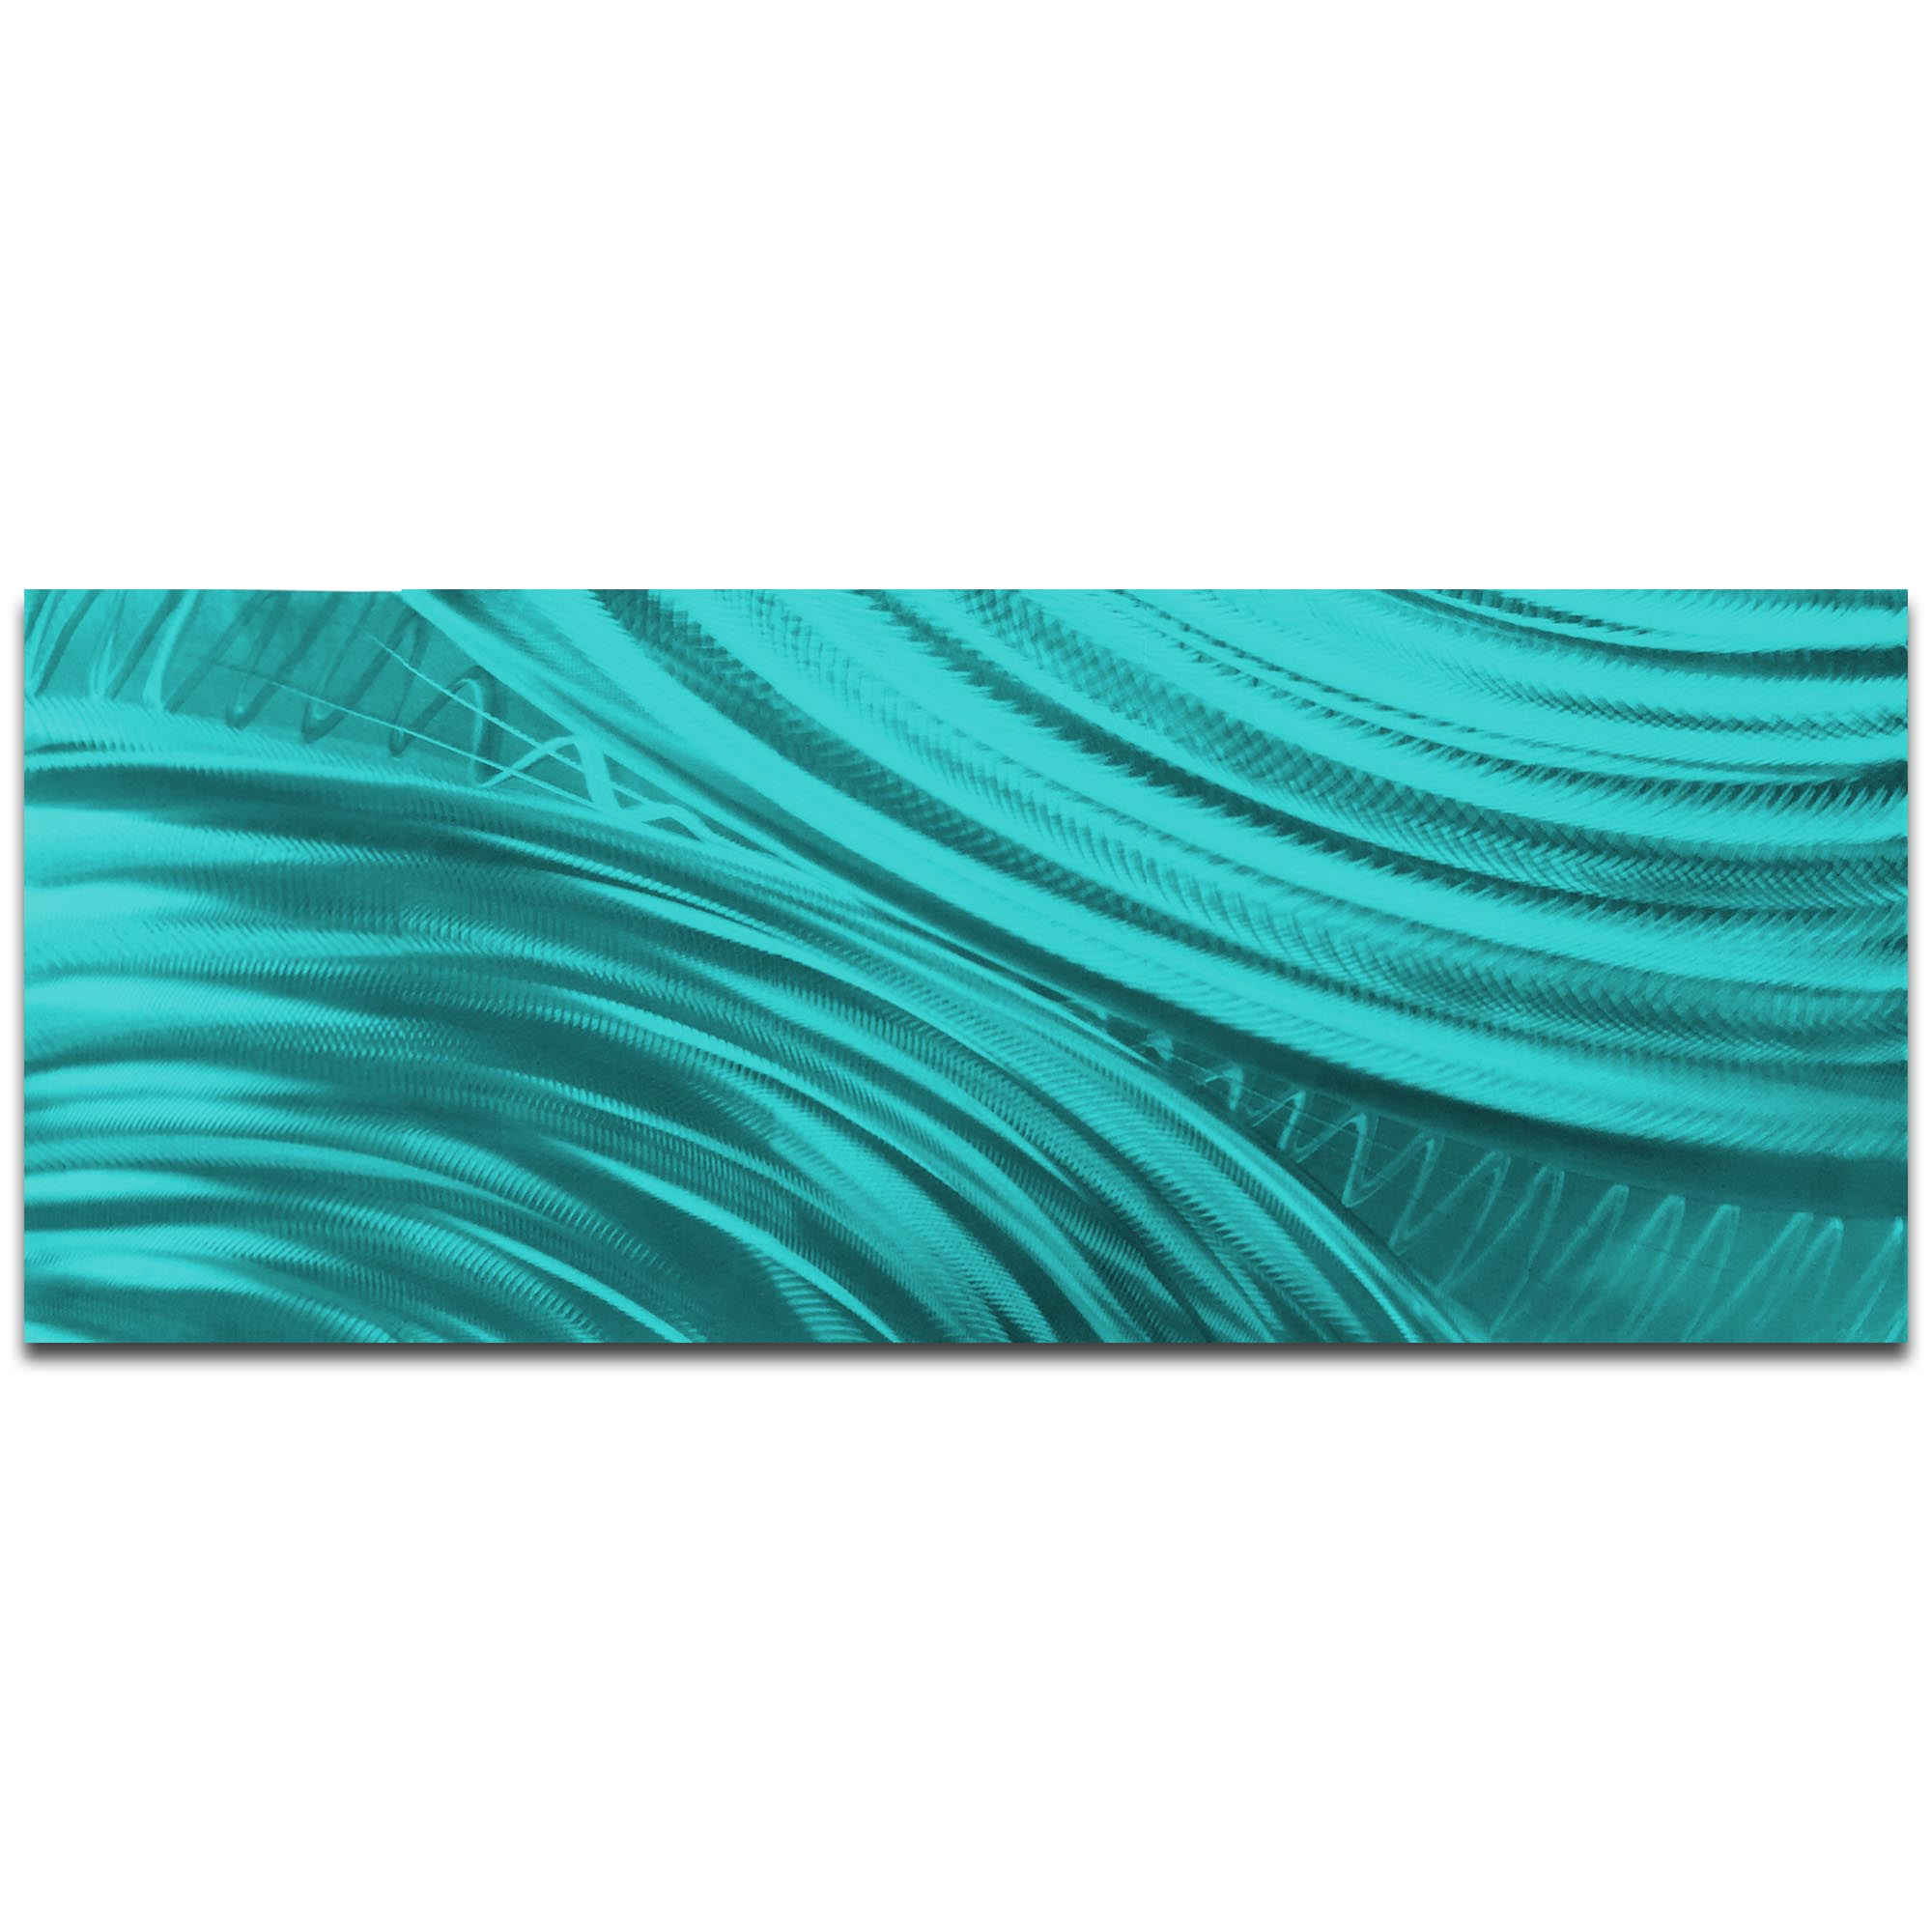 Helena Martin 'Moment of Impact Teal' 60in x 24in Original Abstract Art on Ground and Painted Metal